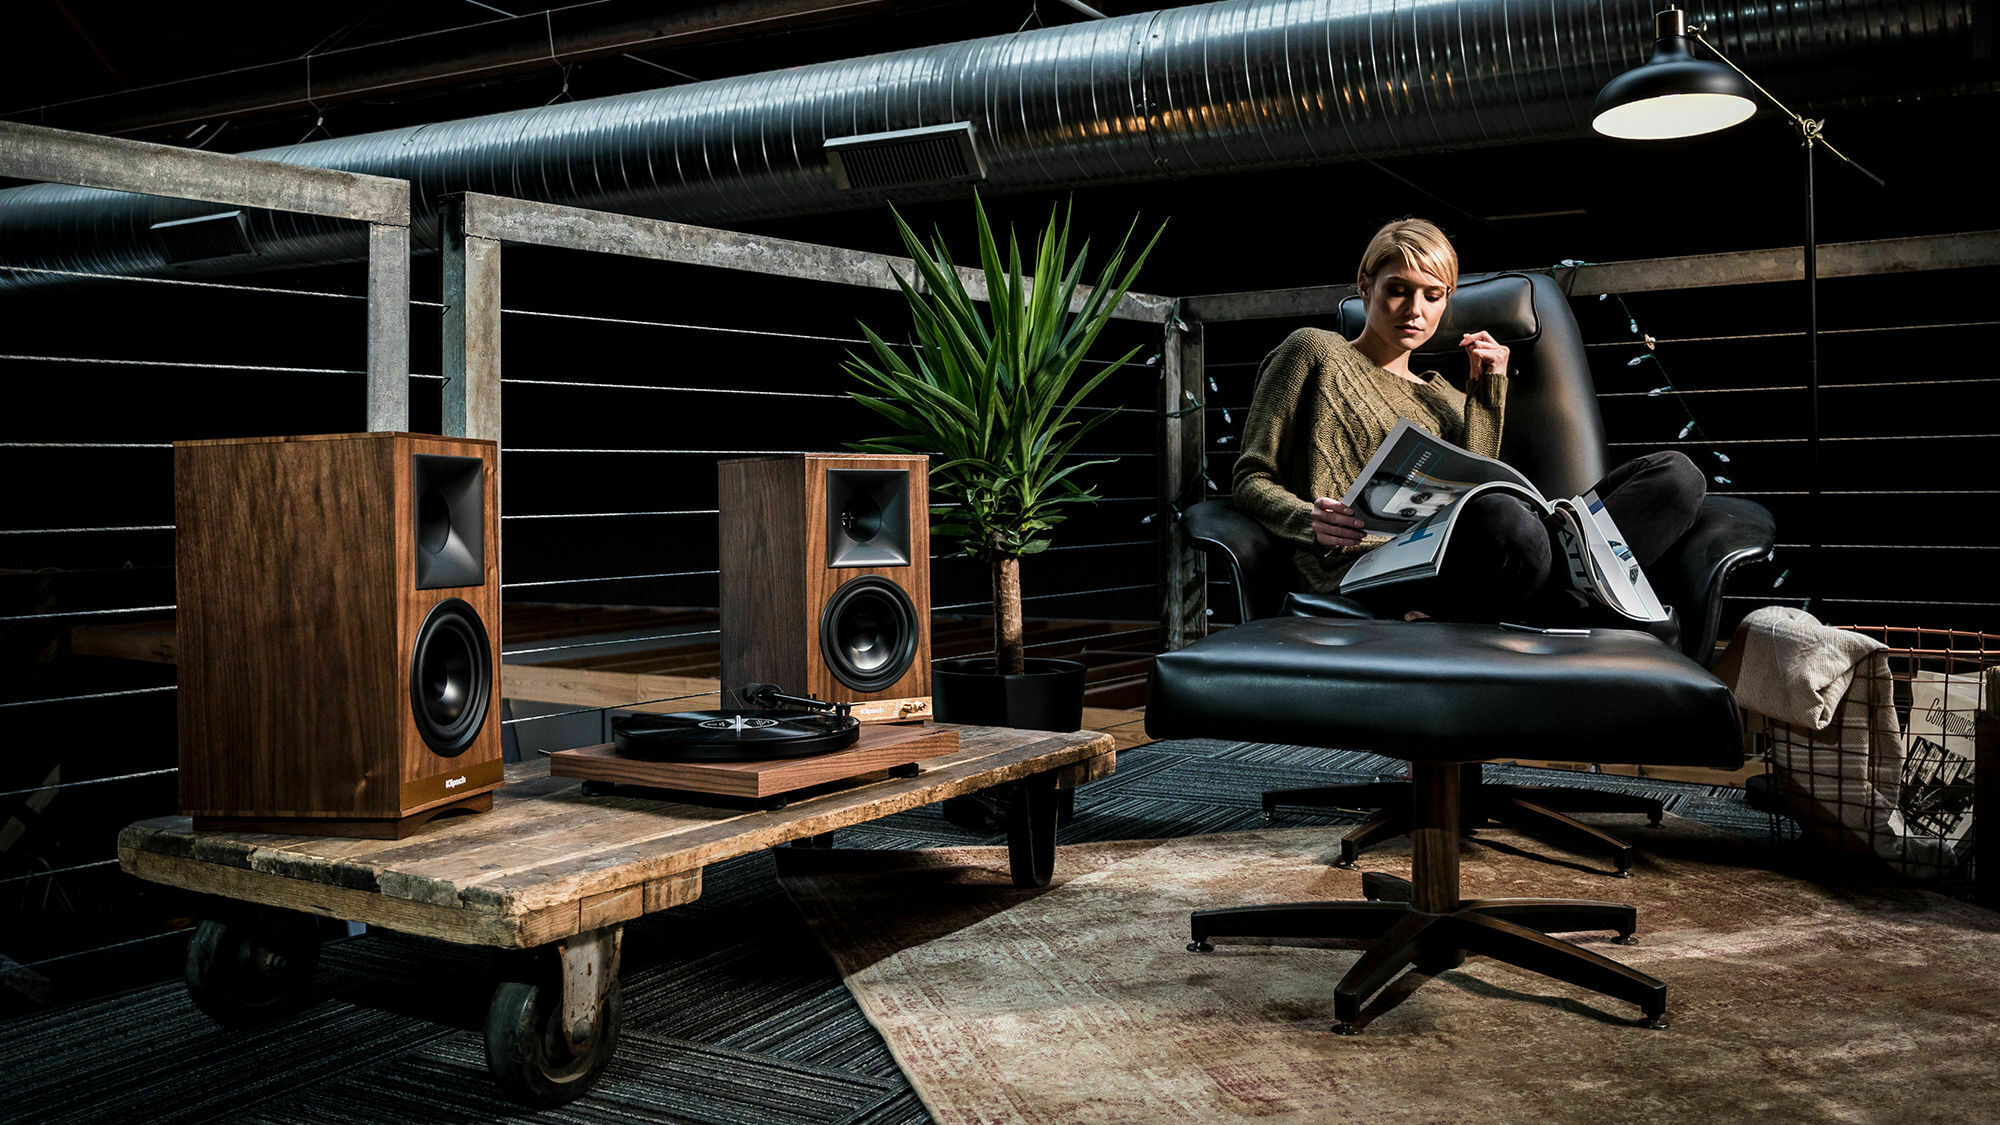 Klipsch The Sixes powered speakers next to turntable with woman listening